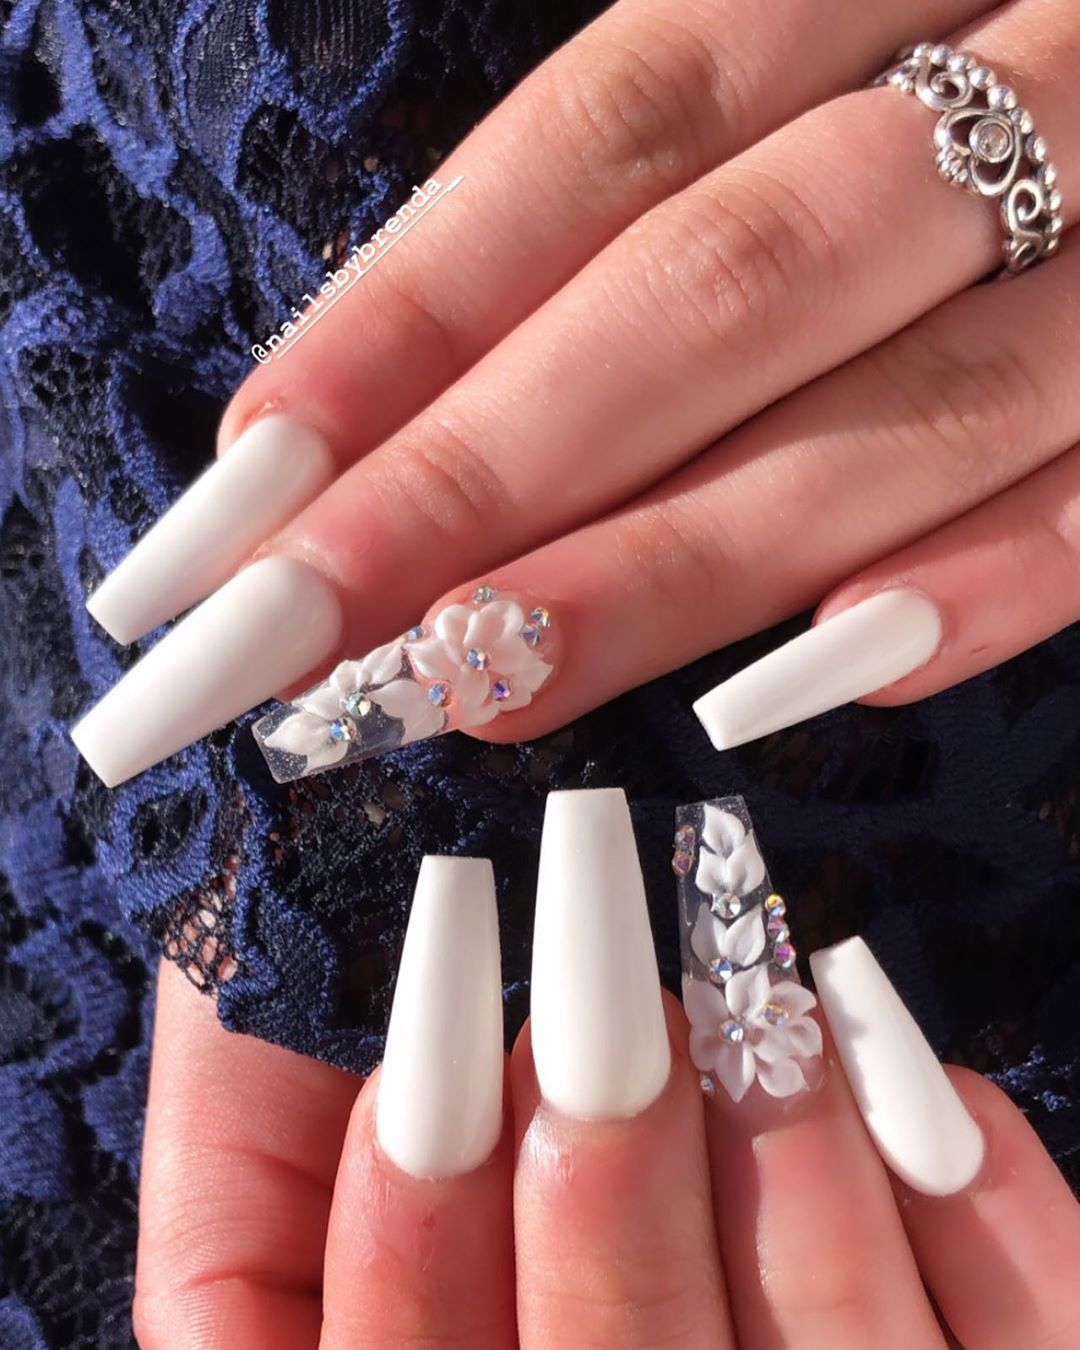 Cute white coffin nails design with accent floral nail ...